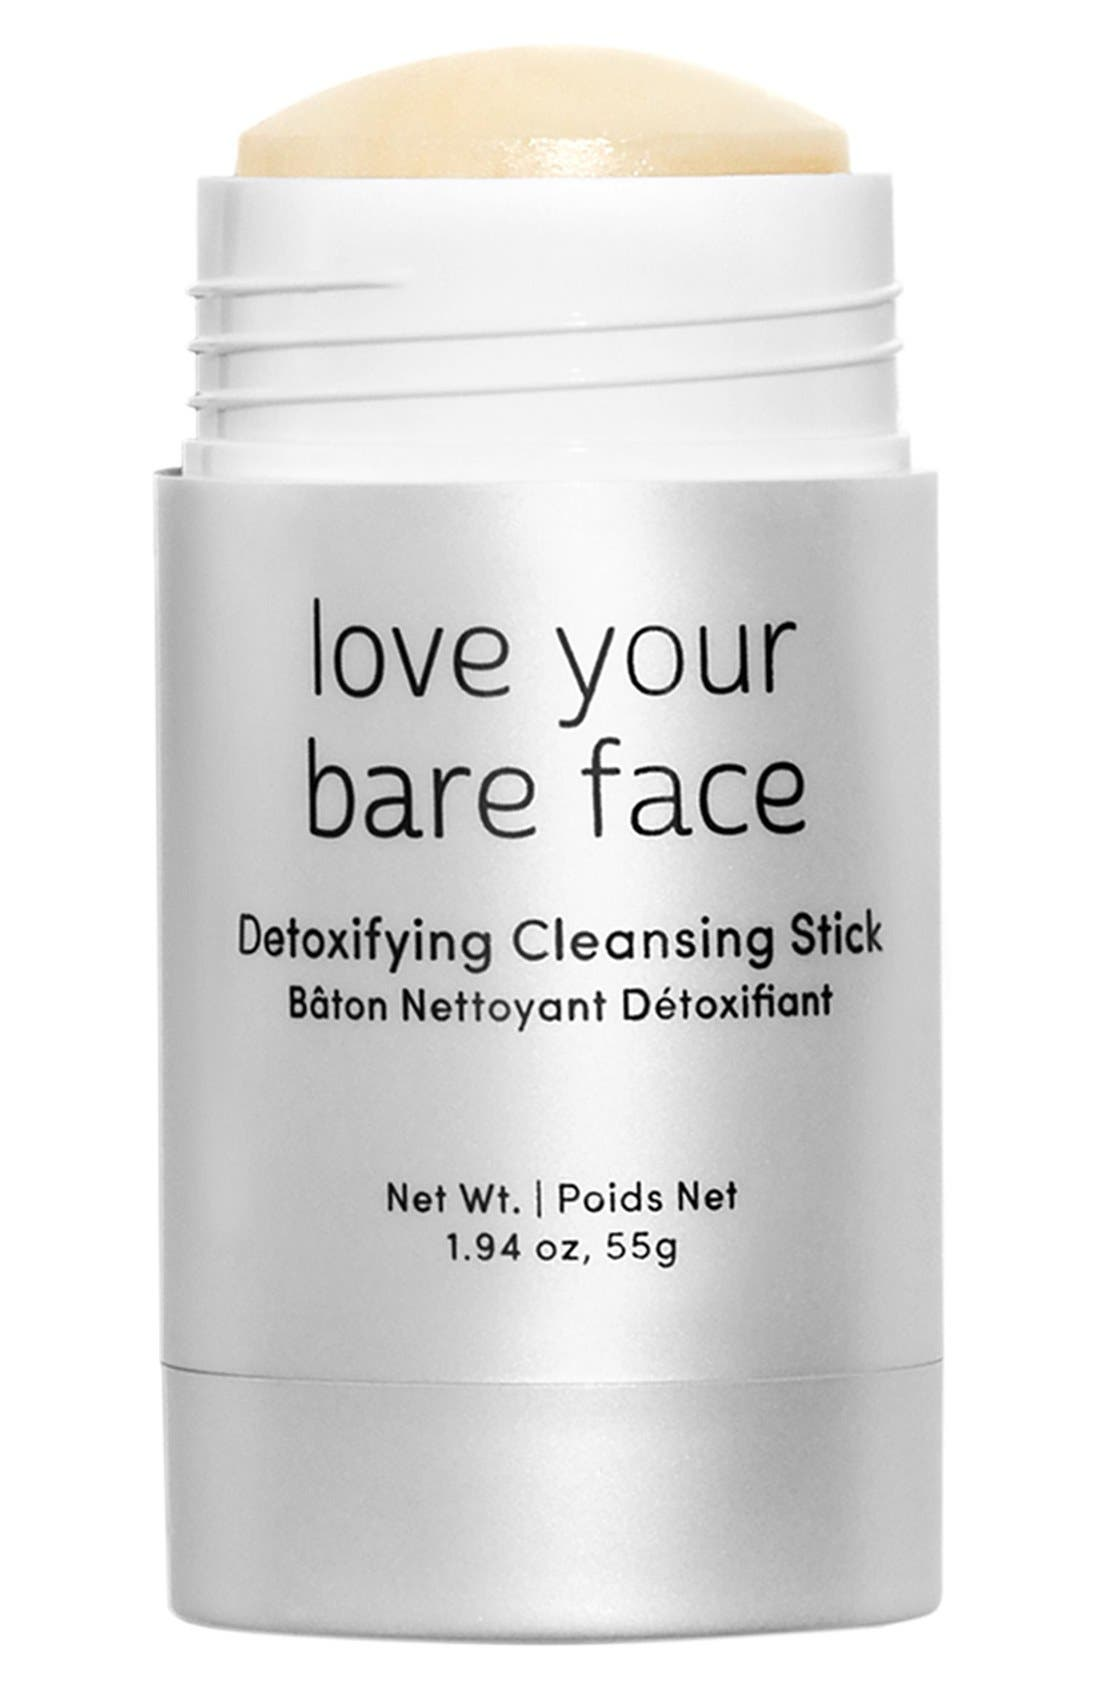 Julep™ Love Your Bare Face Detoxifying Cleansing Stick